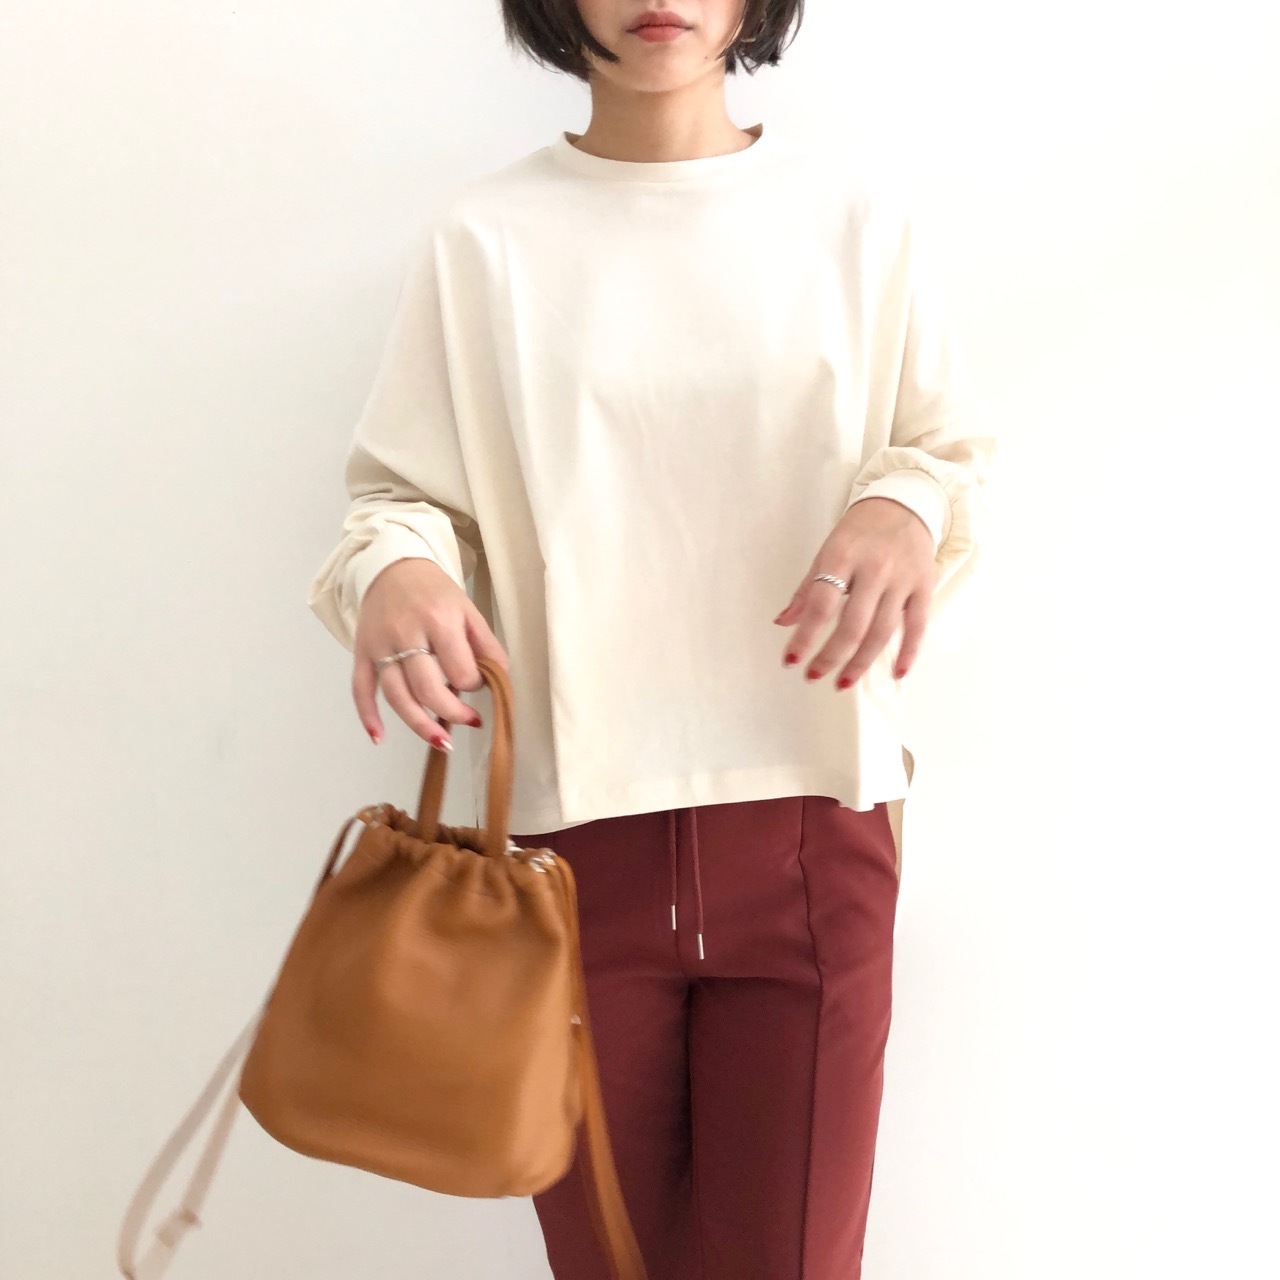 【 Valance Select 】- SP-CT9304 - Loose tops